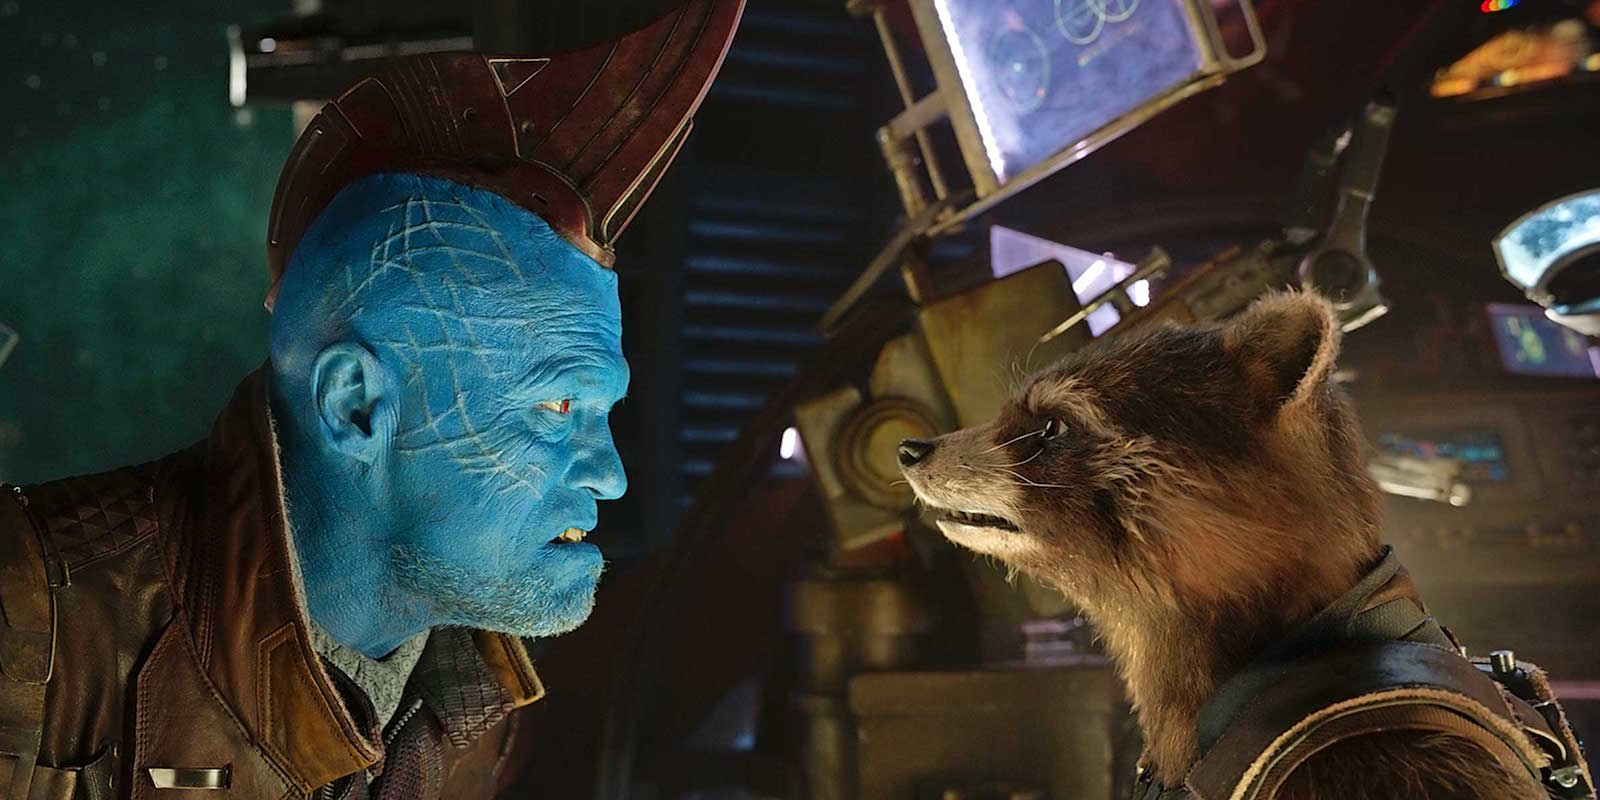 screenrant.comGuardians of the Galaxy 2 Images Spotlight Yondu, Ego and Rocket